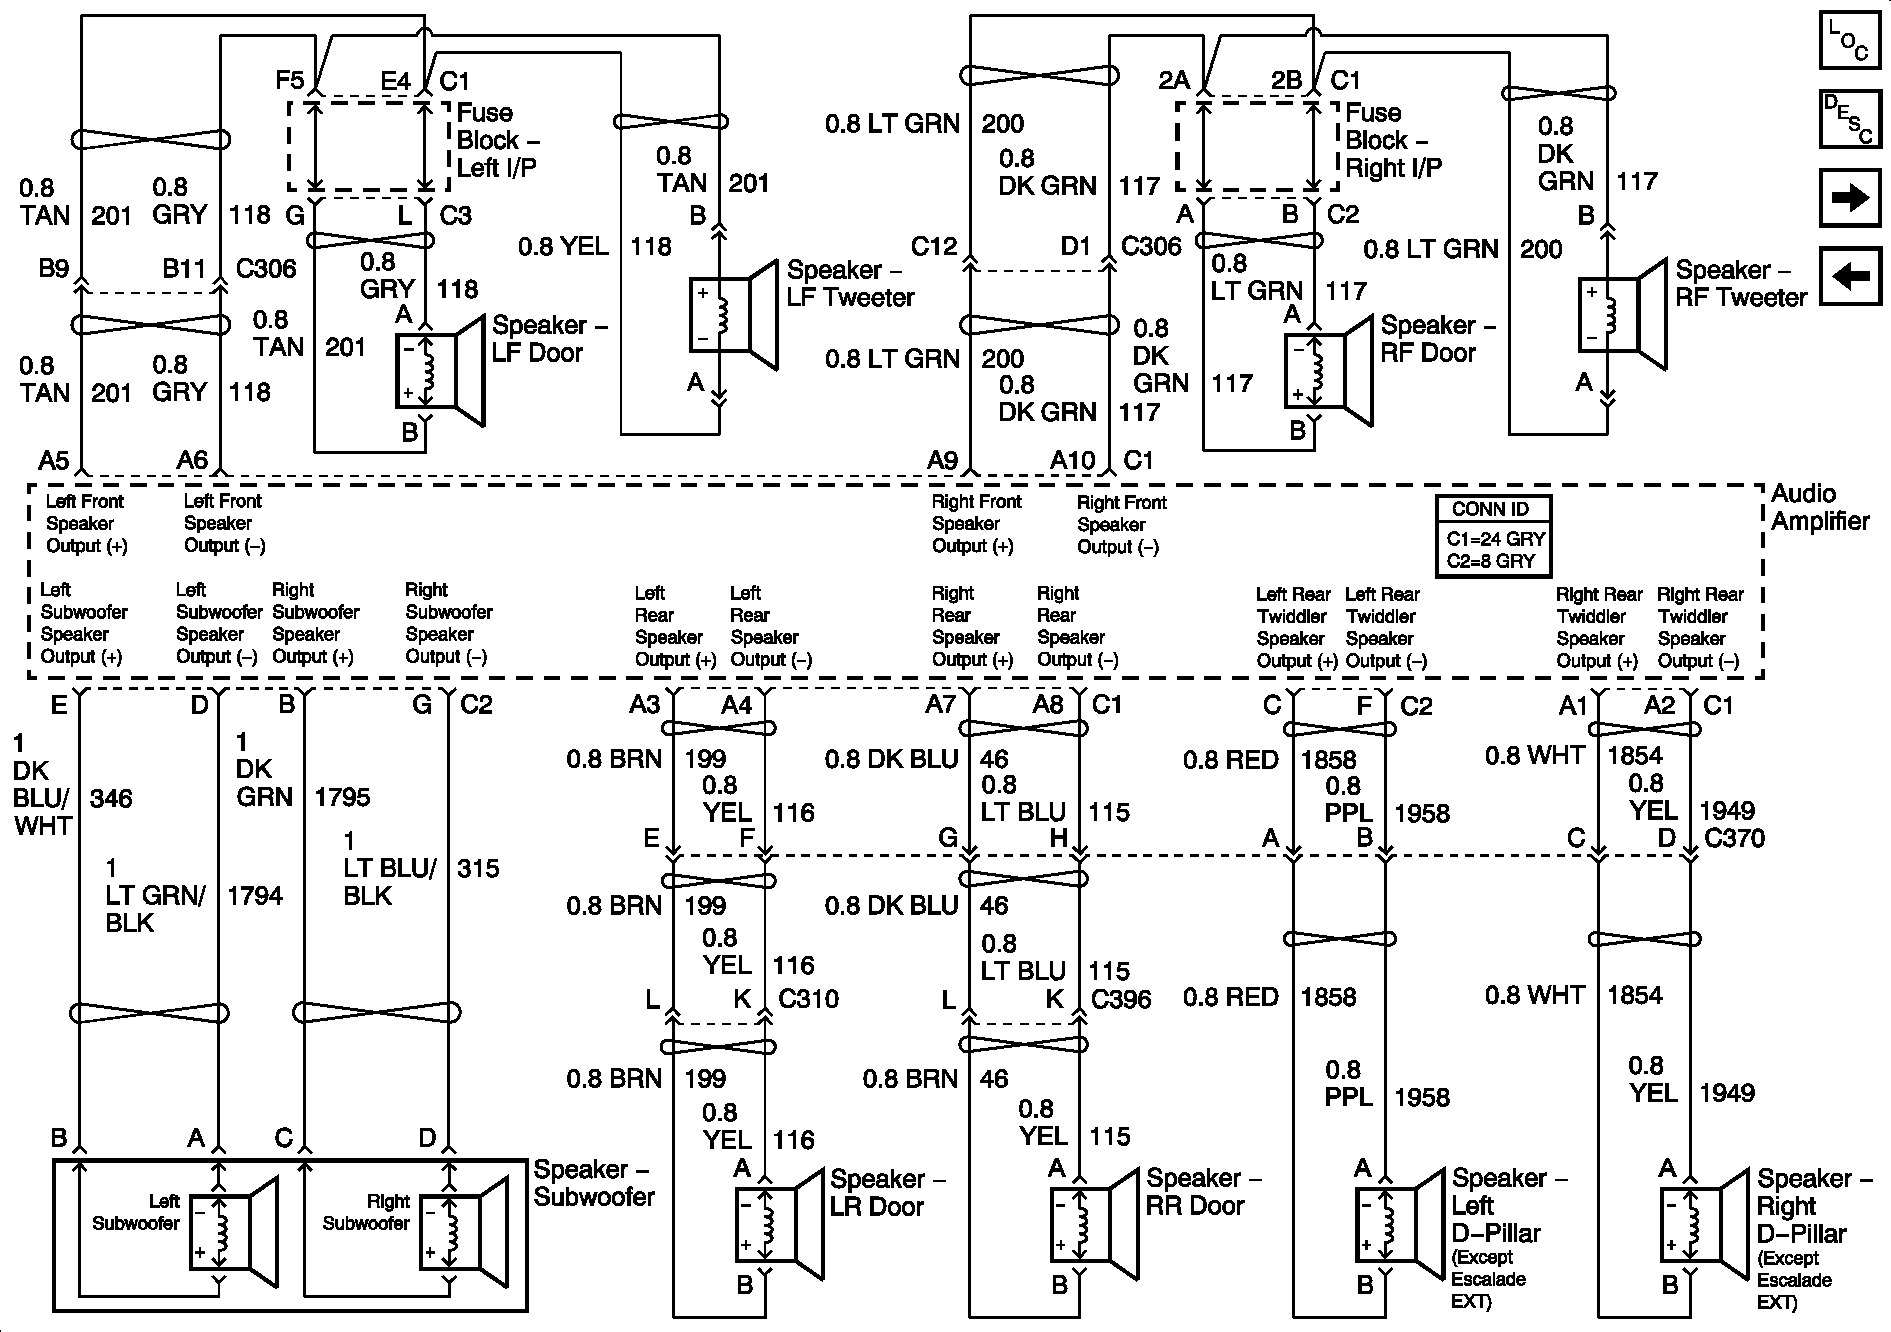 wzkp_6821] 08 chevy silverado with bose radio wiring diagram diagram  database website wiring diagram - steamdiagram.phpbb3.es  diagram database website full edition - phpbb3.es